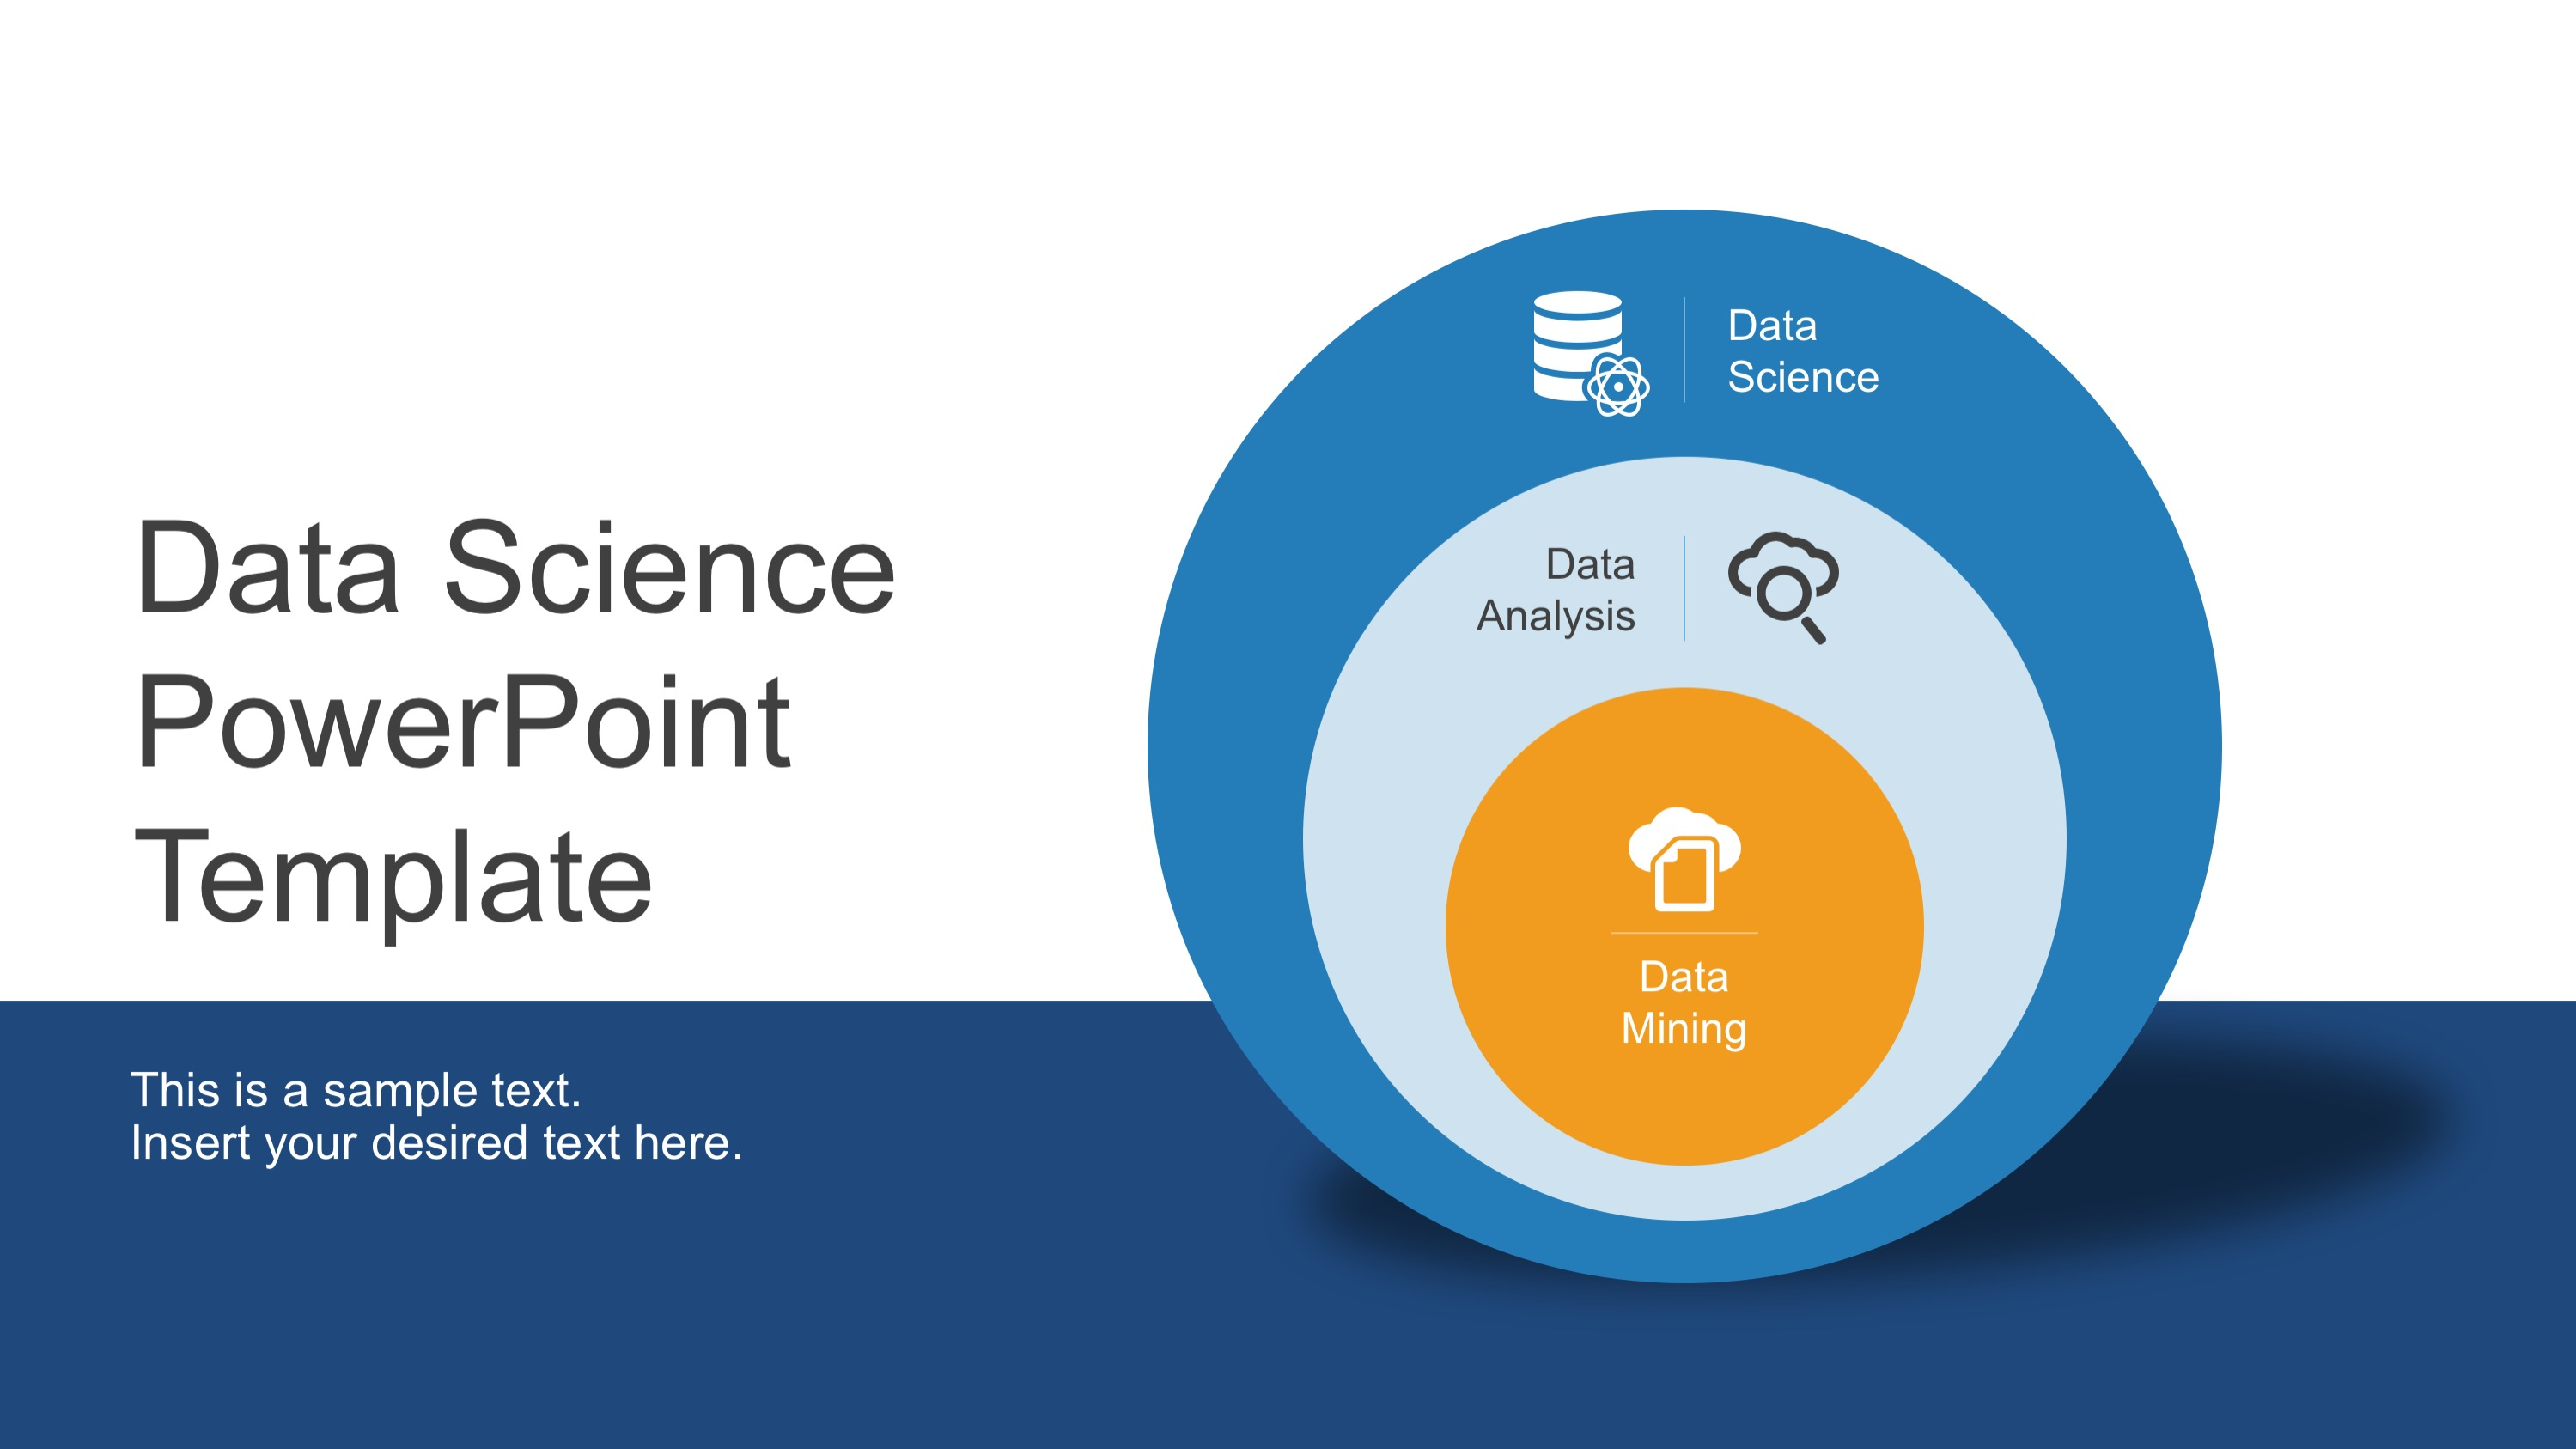 data science shapes powerpoint template - slidemodel, Presentation templates